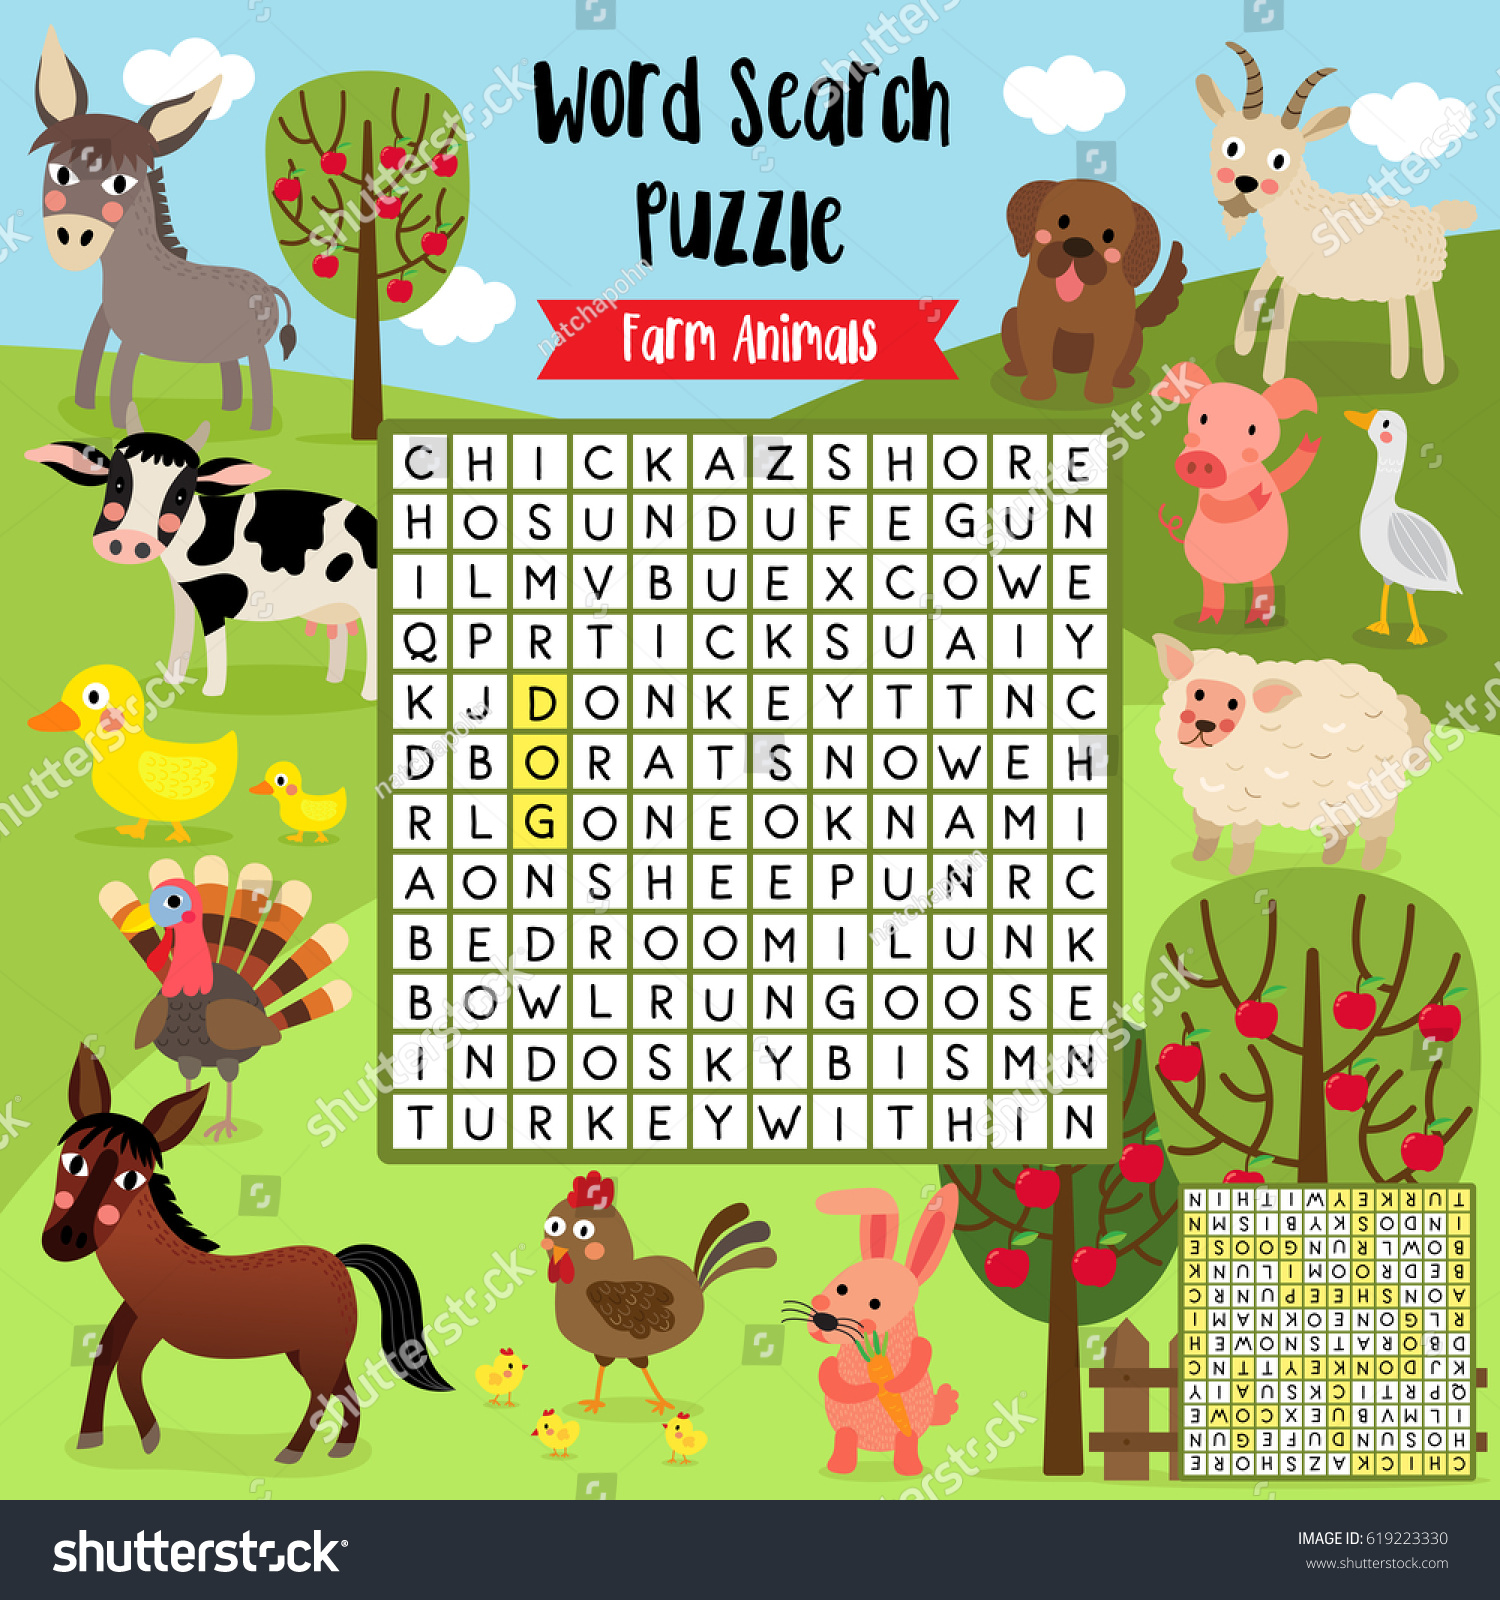 Pearl Harbor Worksheets Word Words Search Puzzle Game Farm Animals Stock Vector   The Soviet Union And Eastern Europe Worksheet Answers Excel with Feelings Worksheets For Kids Free Printable Excel Words Search Puzzle Game Of Farm Animals For Preschool Kids Activity  Worksheet Colorful Printable Version Daltons Law Worksheet Excel